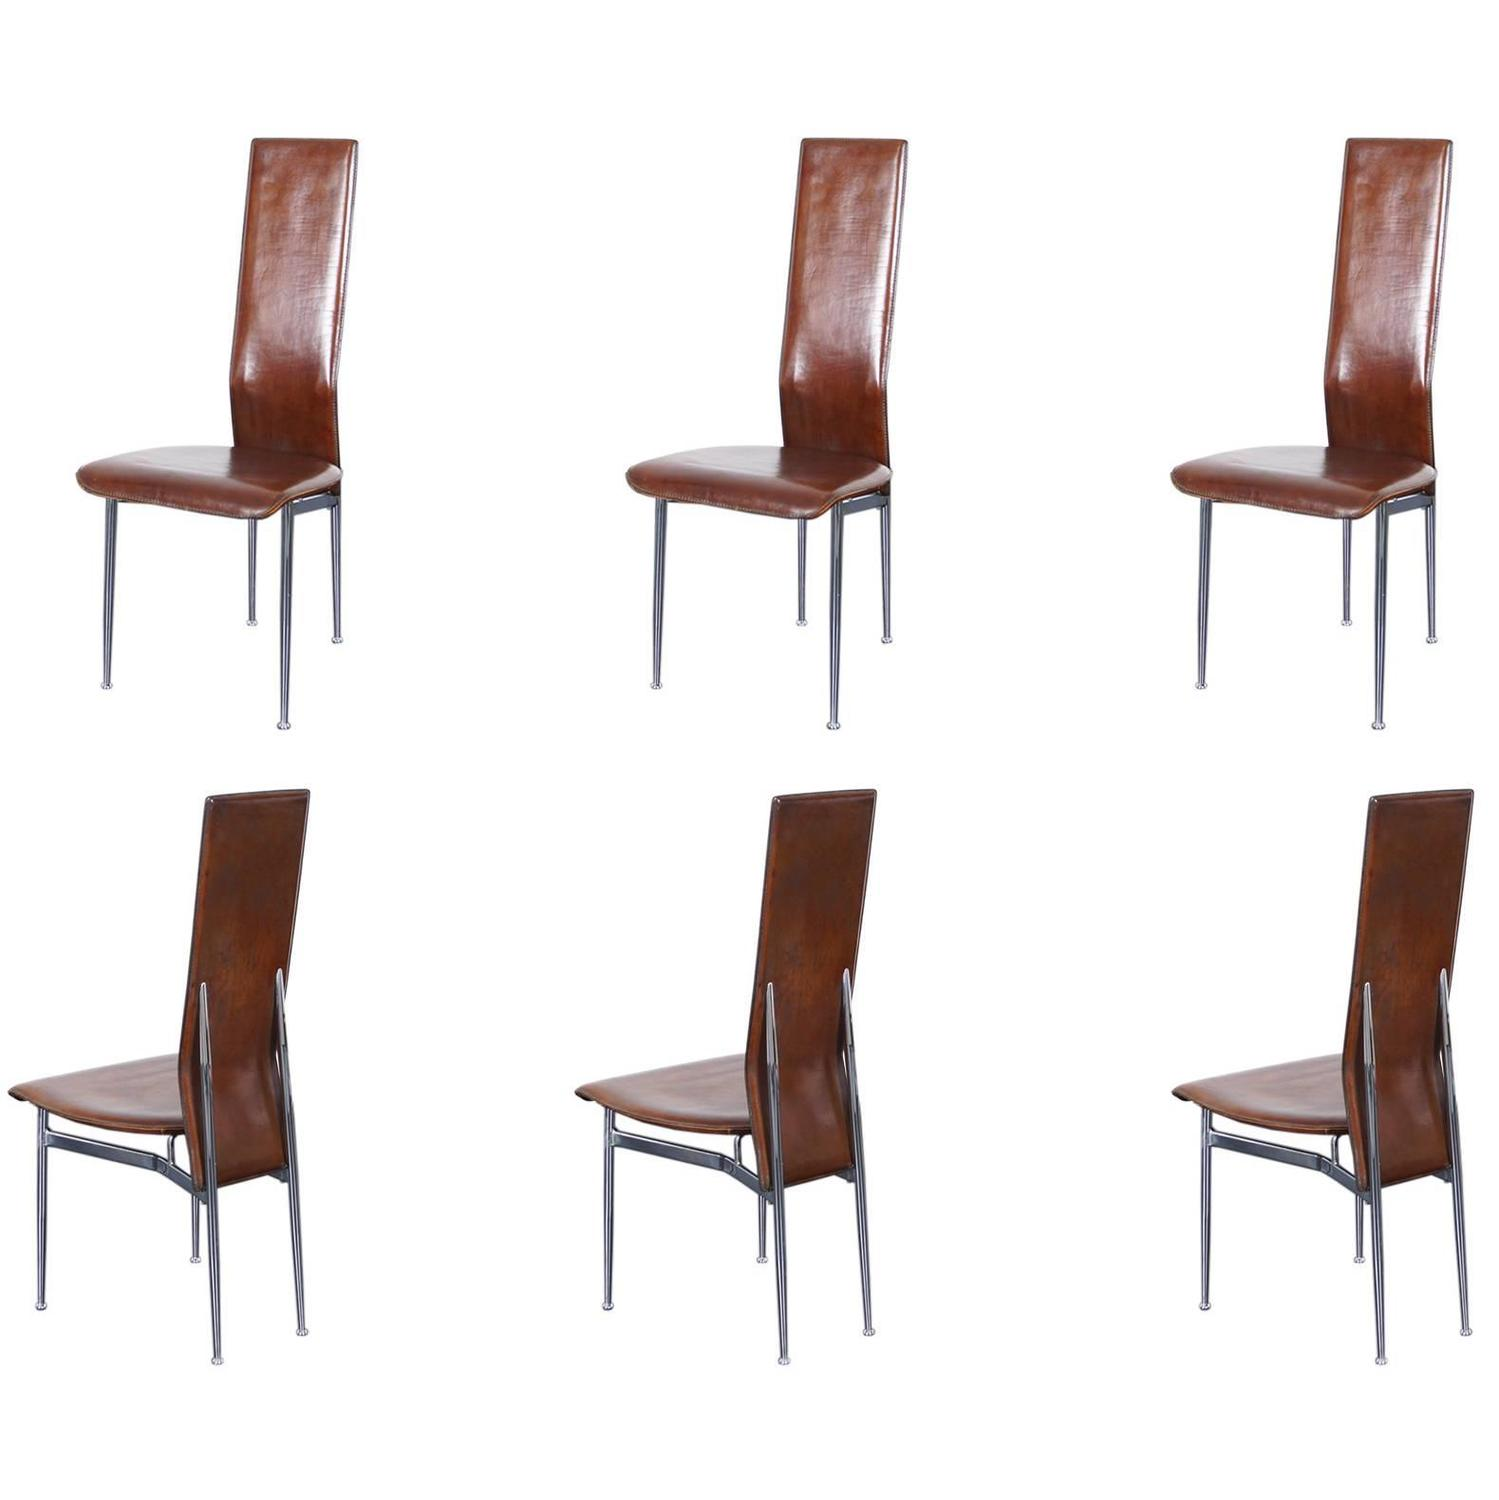 Italian Dining Chairs Italian Leather Dining Chairs For Sale At 1stdibs